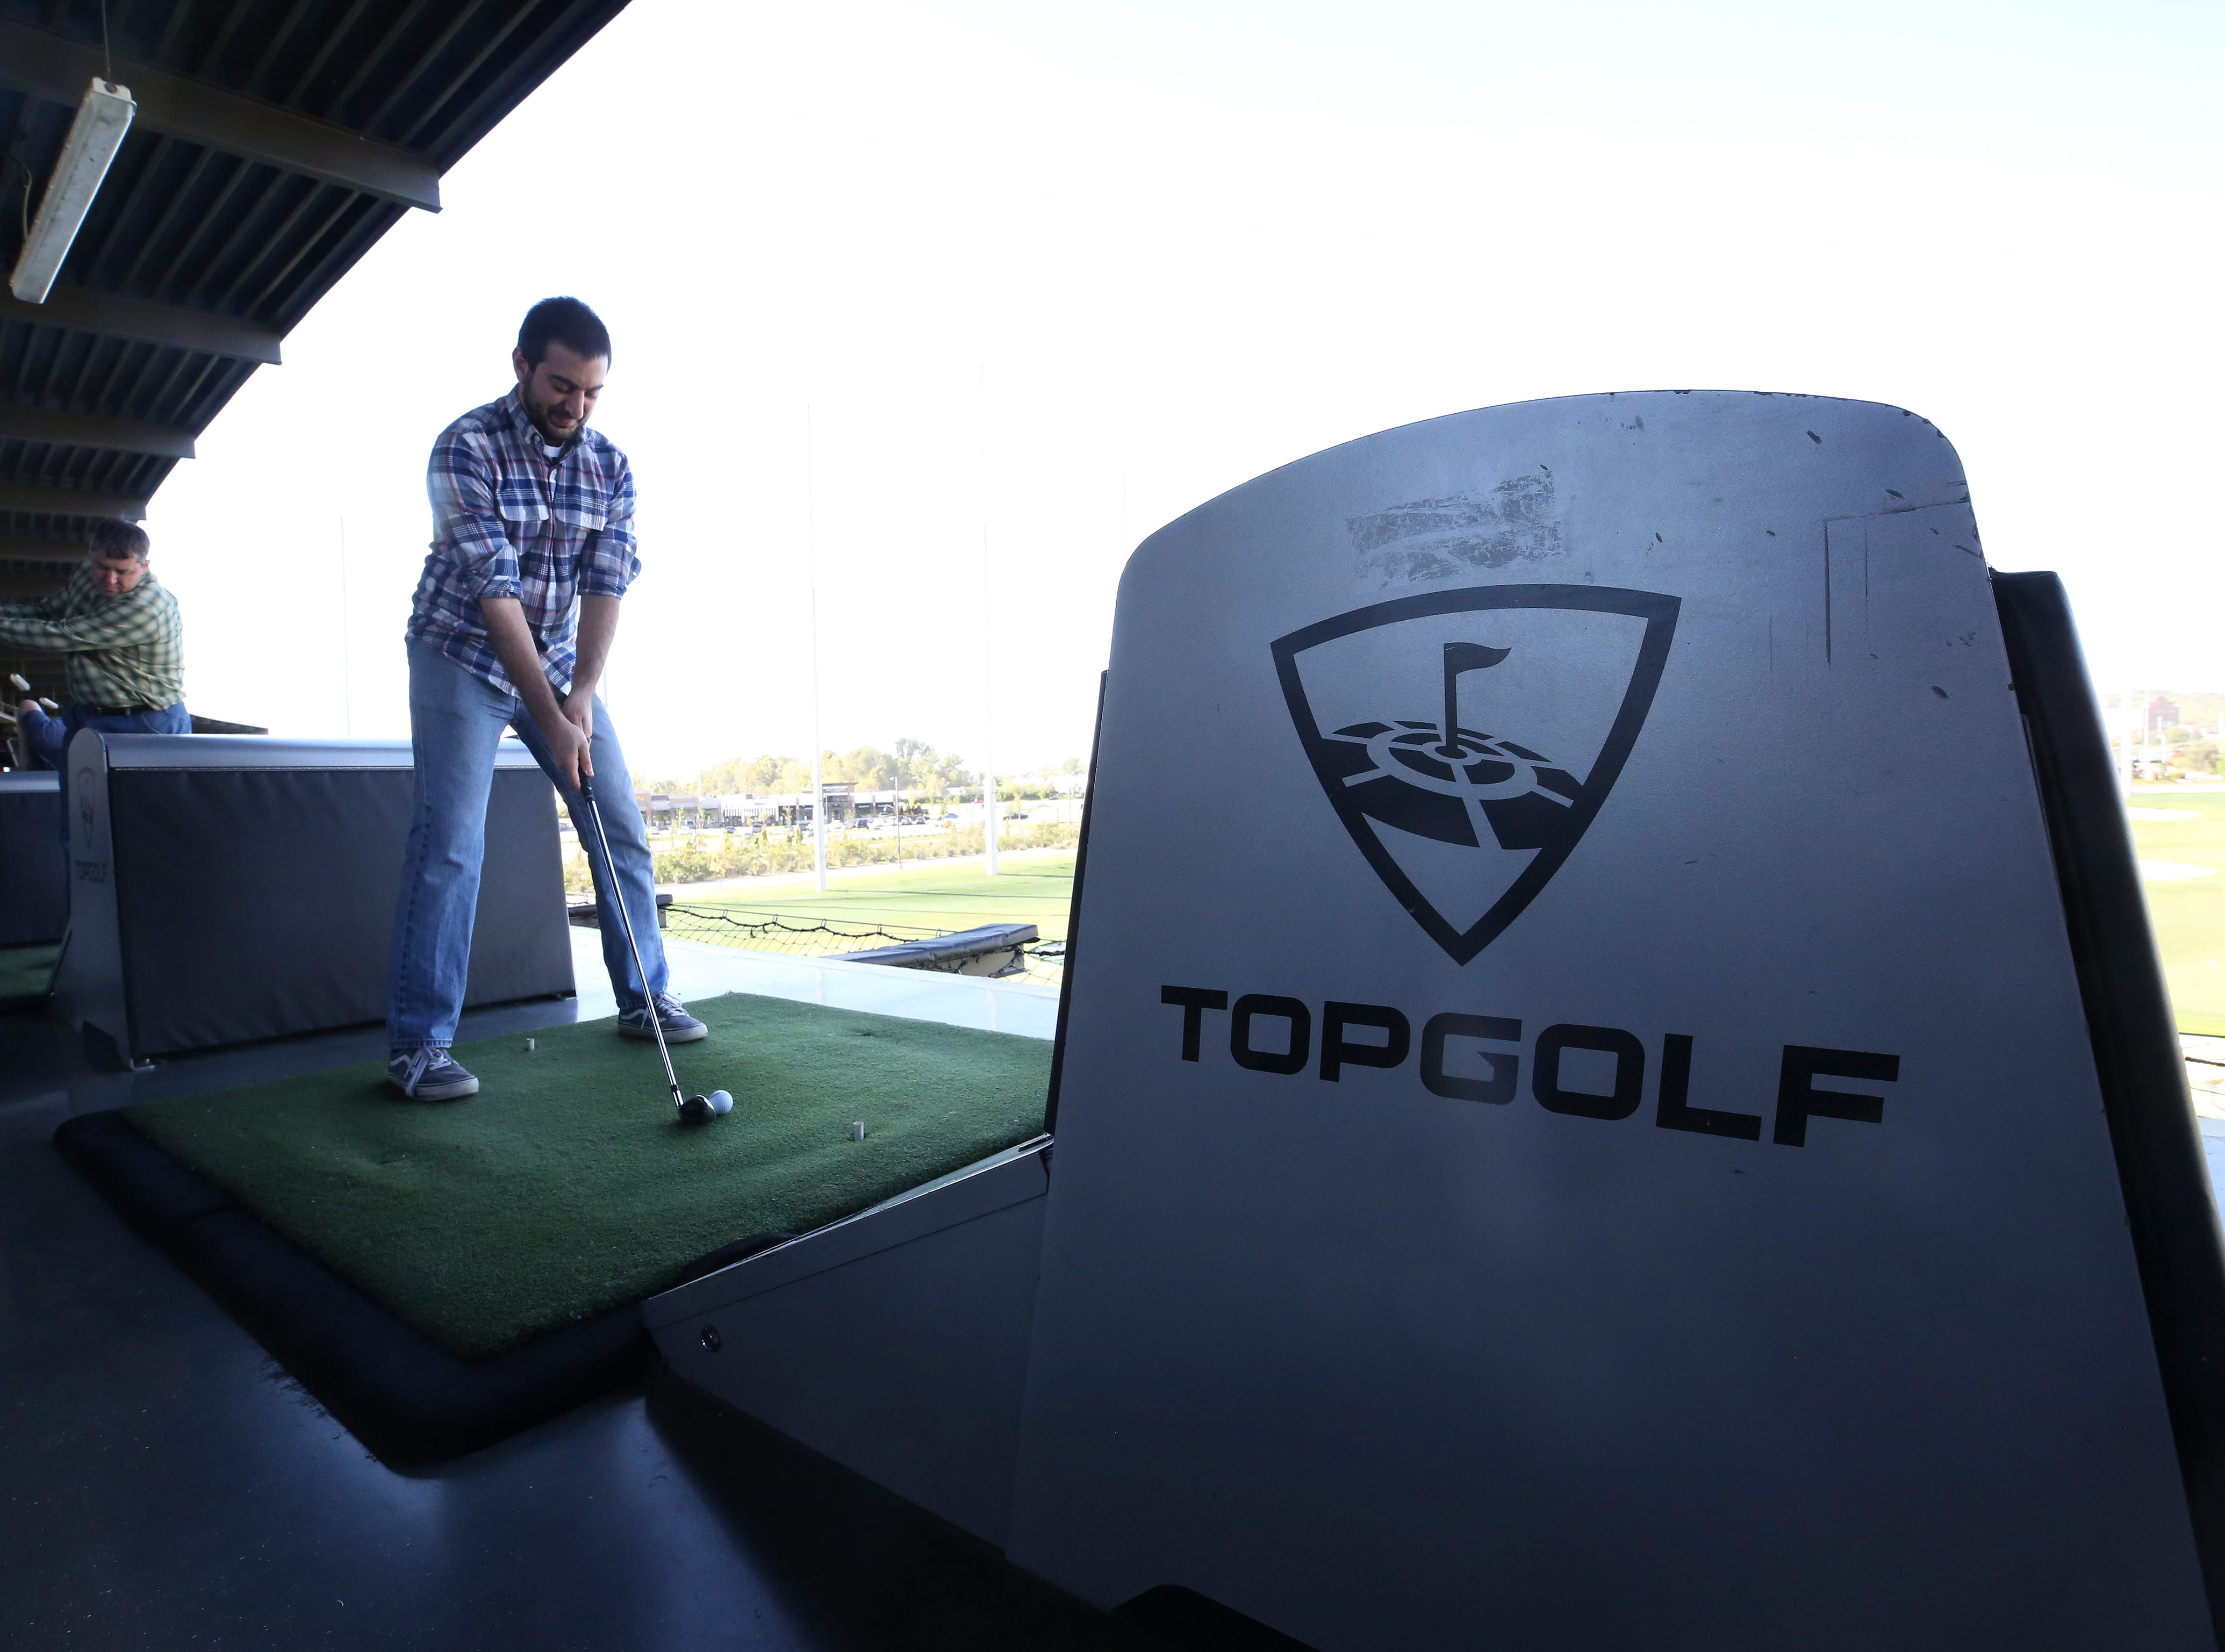 Courier Journal reporter Justin Sayers worked on his swing at the Topgolf outside of Cincinnati, Ohio.  Topgolf is proposing to build a facility at the Oxmoor Center in Louisville as they wait for a decision by the Louisville Metro Planning Commission. 